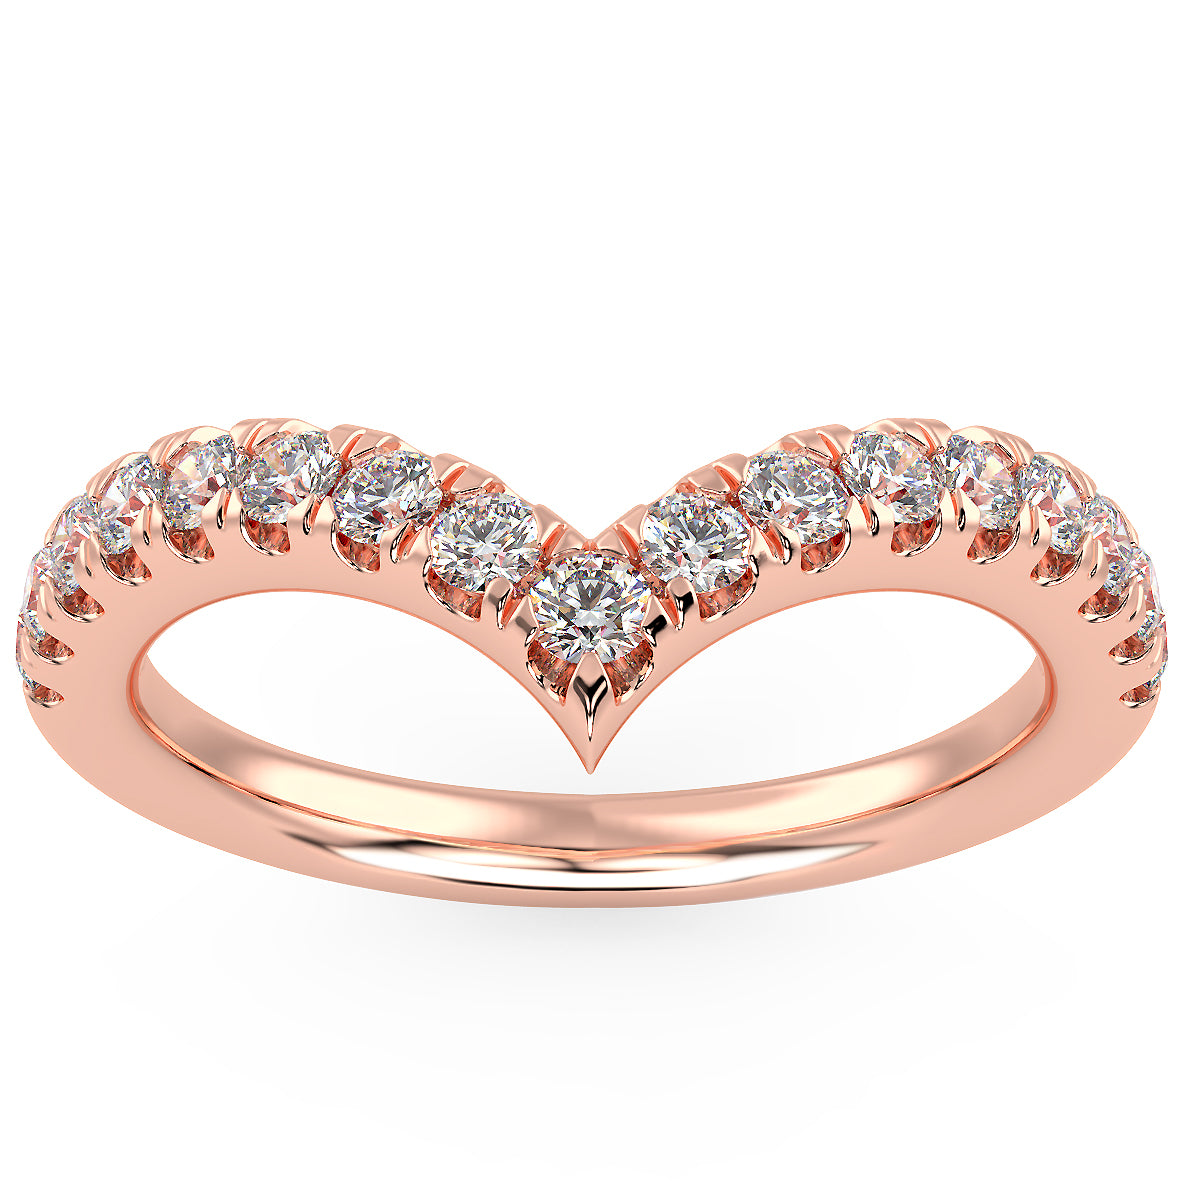 Gravity Ring in Rose Gold